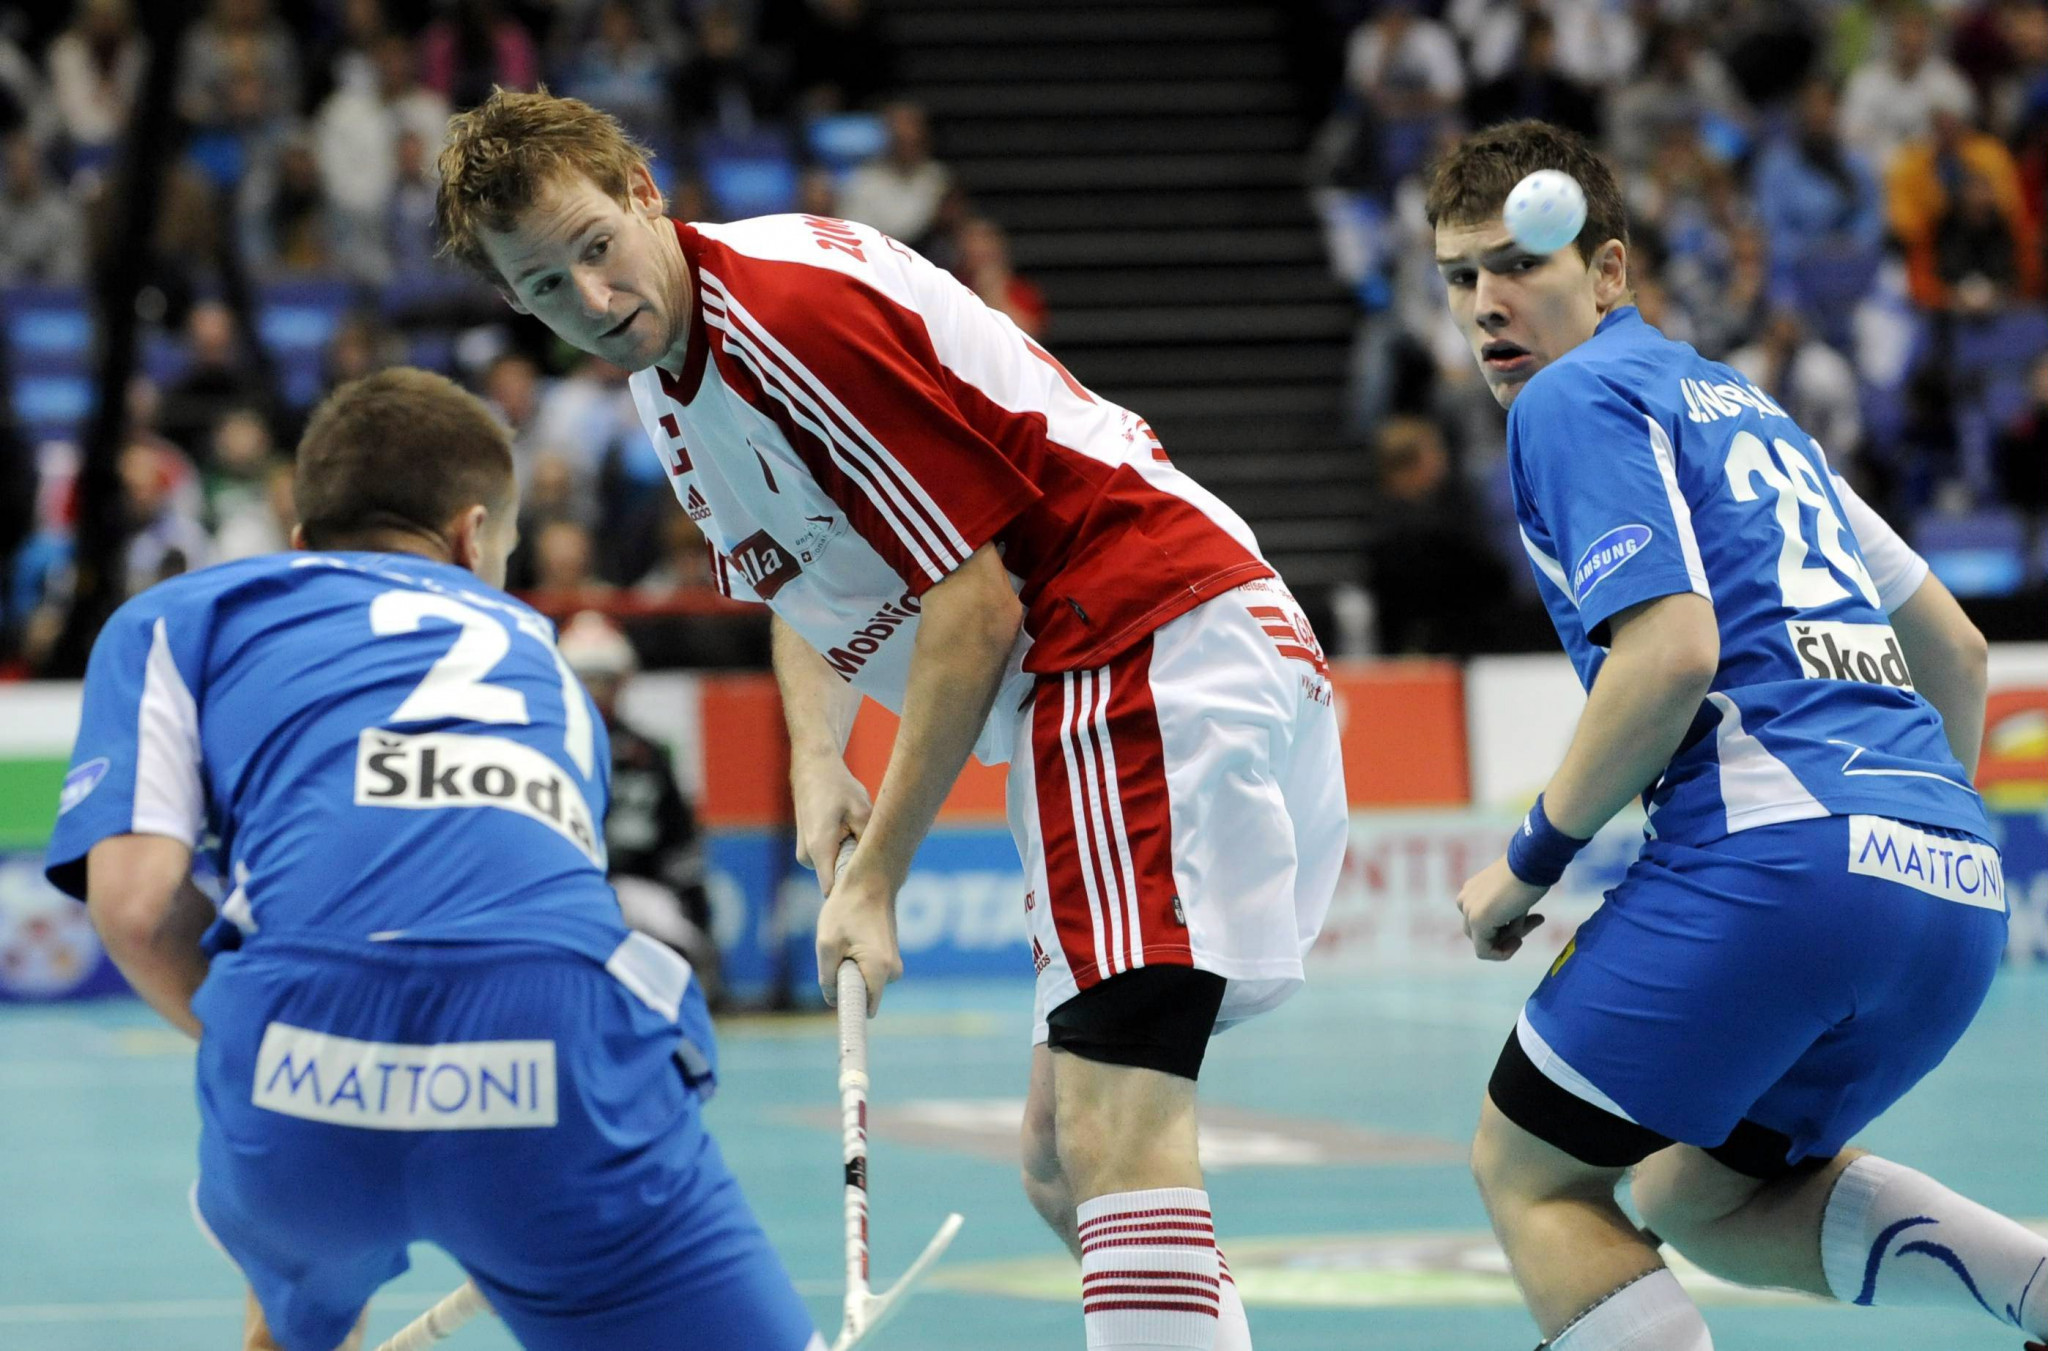 CONCORDIA's partnership with organisers of the 2022 Men's World Floorball Championships is set to enable schoolchildren to attend the event while also giving families an opportunity to try out the sport ©Getty Images